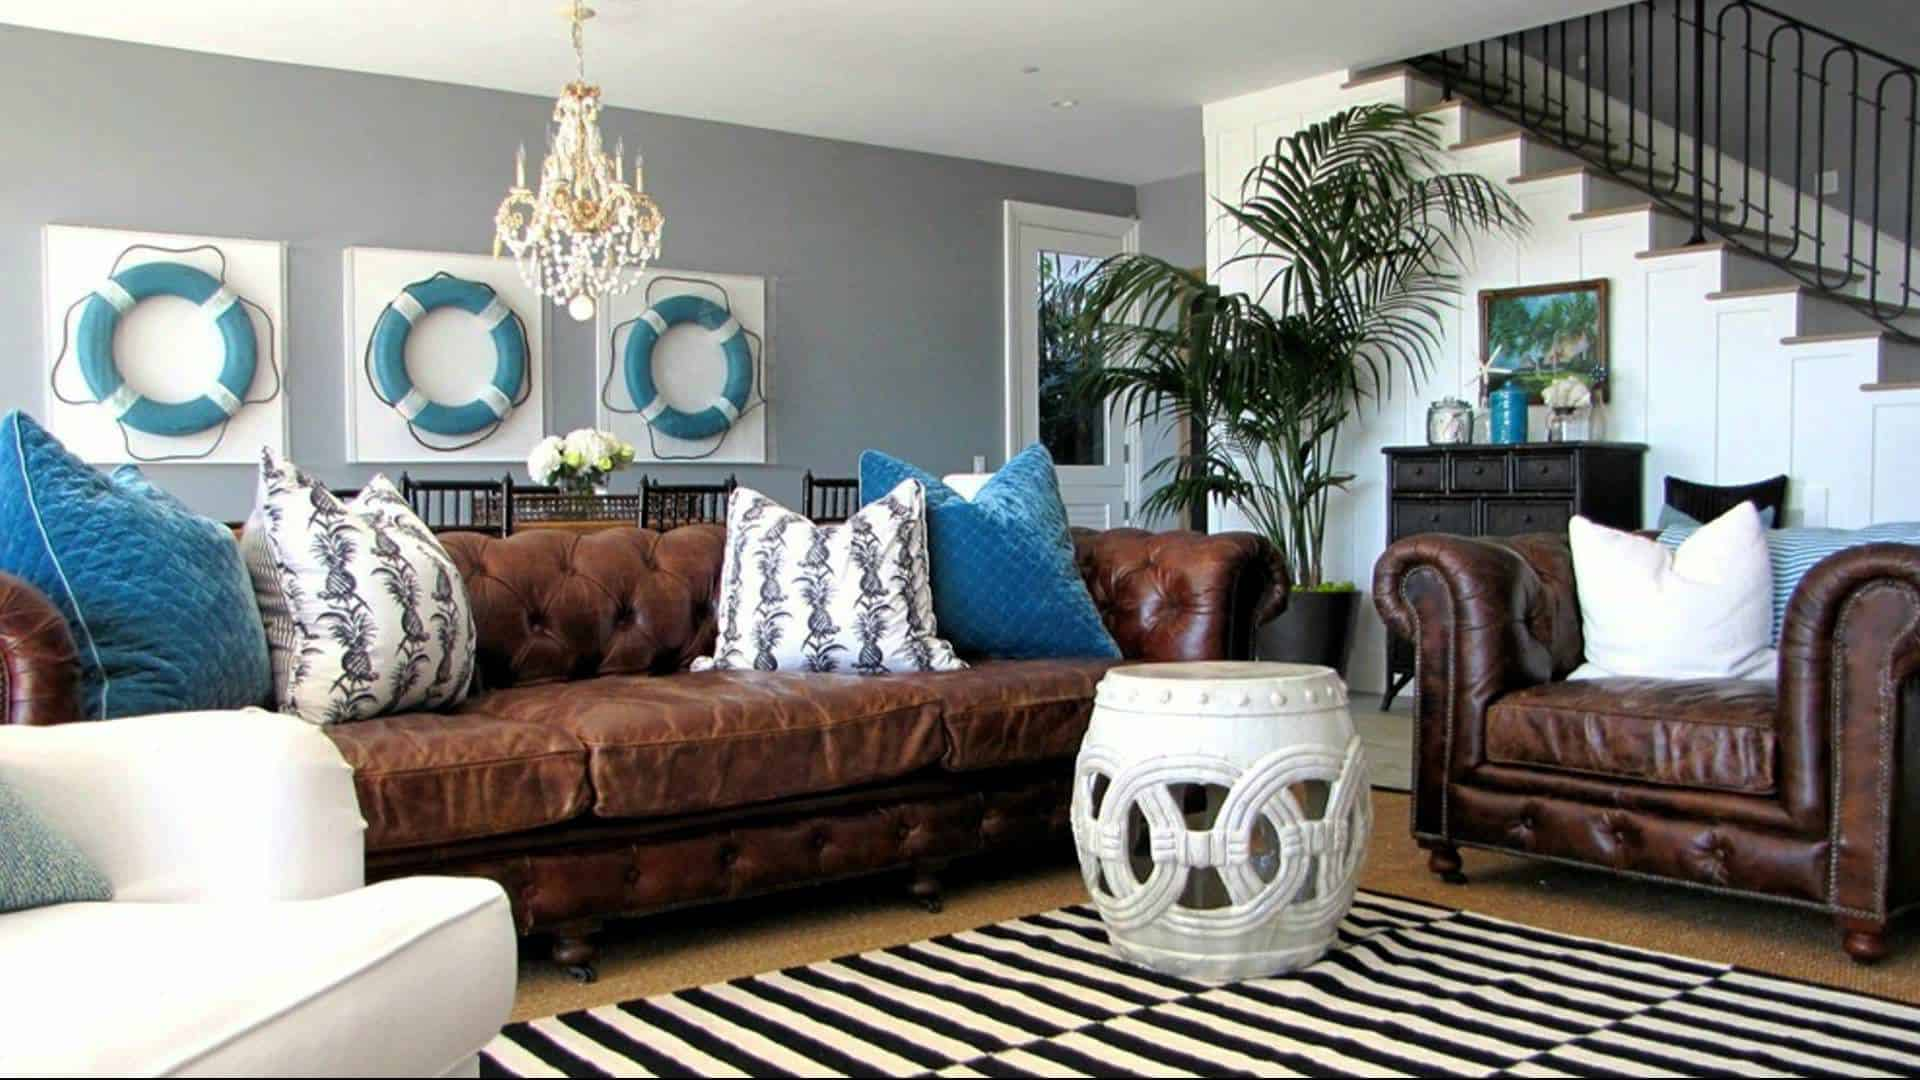 Home Design Ideas Working Round A Brown Leather Sofa